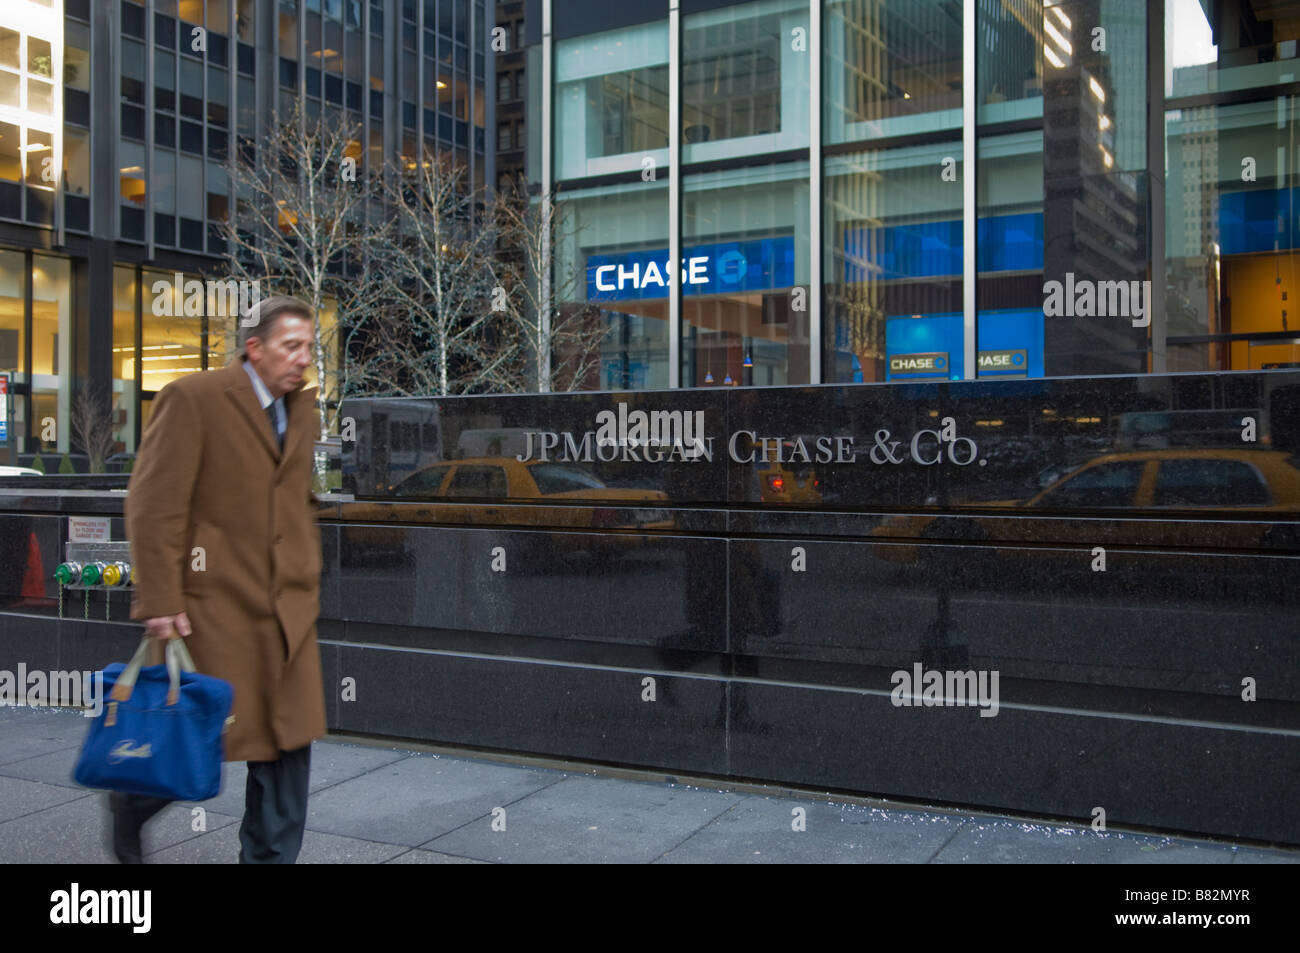 The sign outside the JP Morgan Chase headquarters in New York City on Wednesday February 4 2009 Frances M Roberts Stock Photo